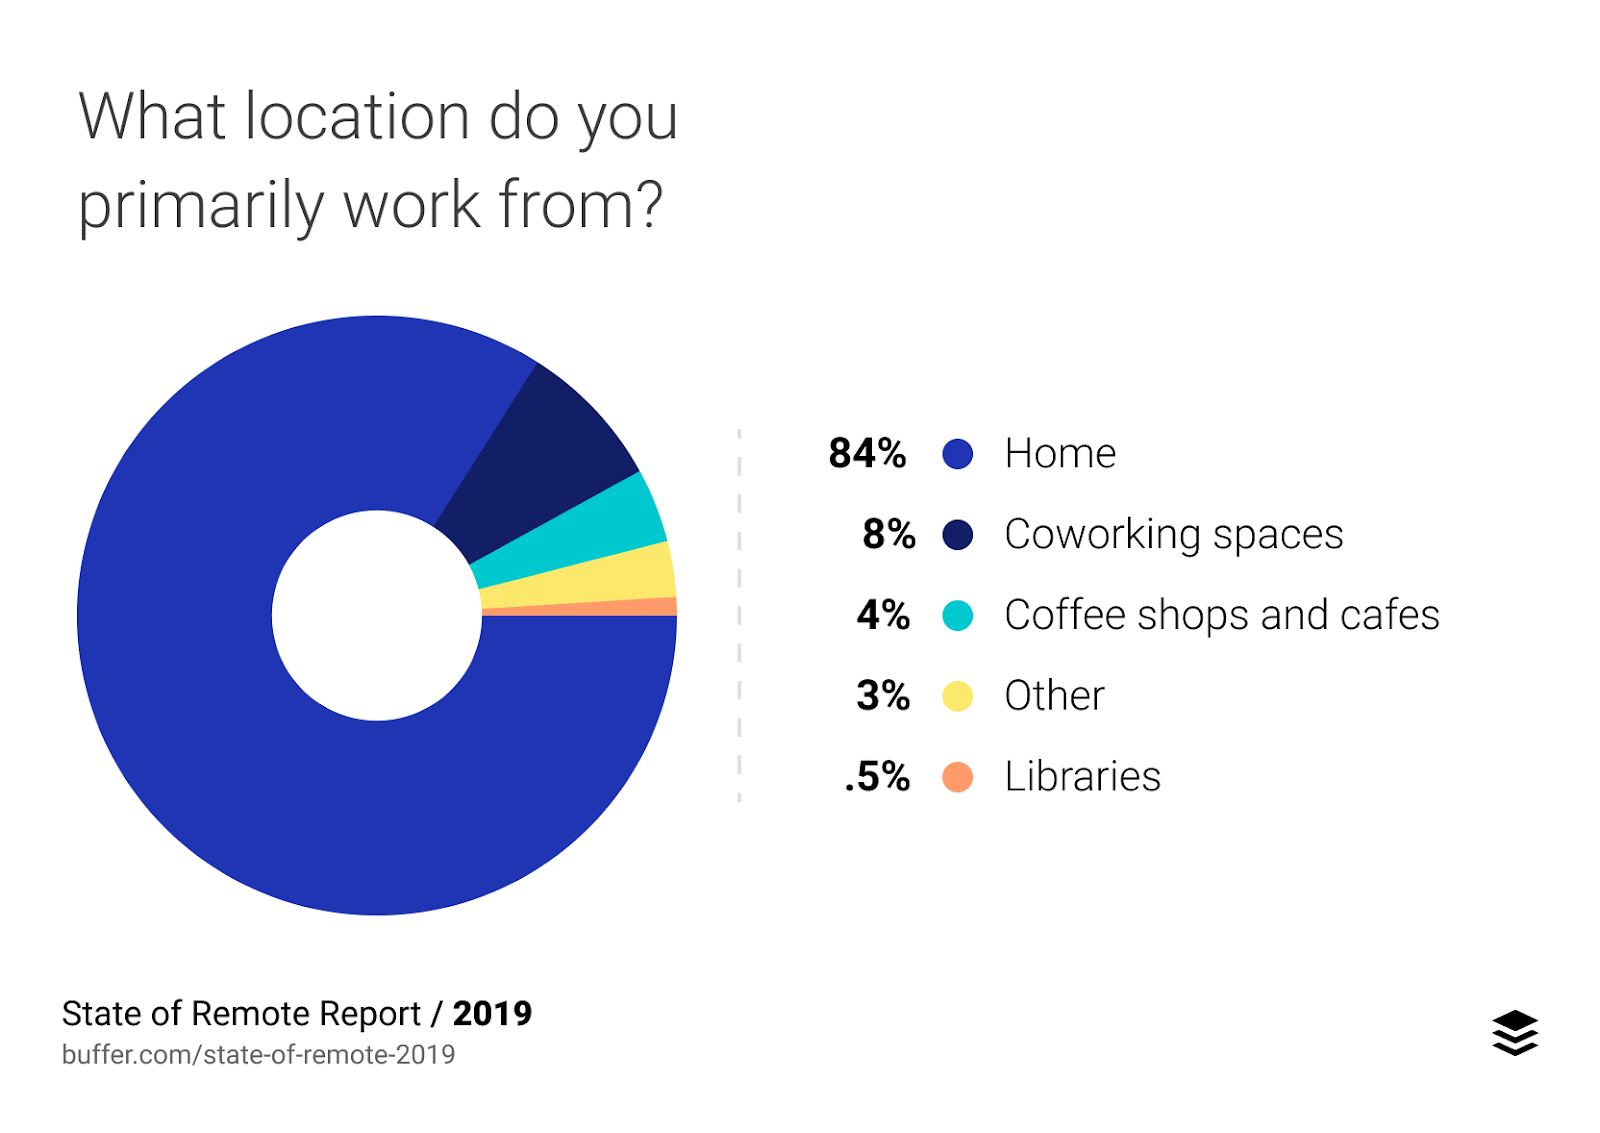 Remote work locations